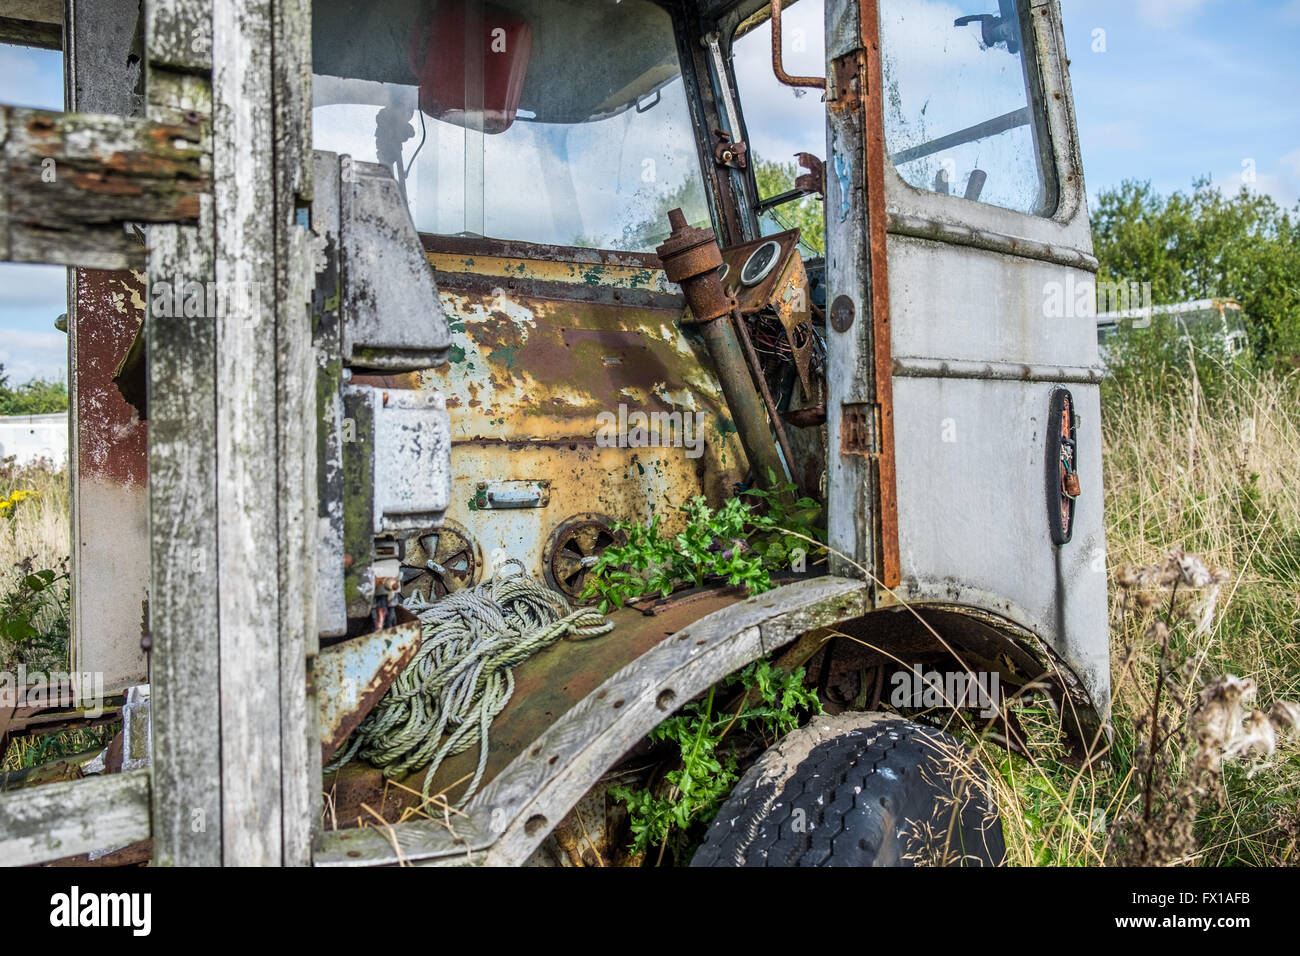 Old coach body abandoned and left to rot in a farmers field. - Stock Image